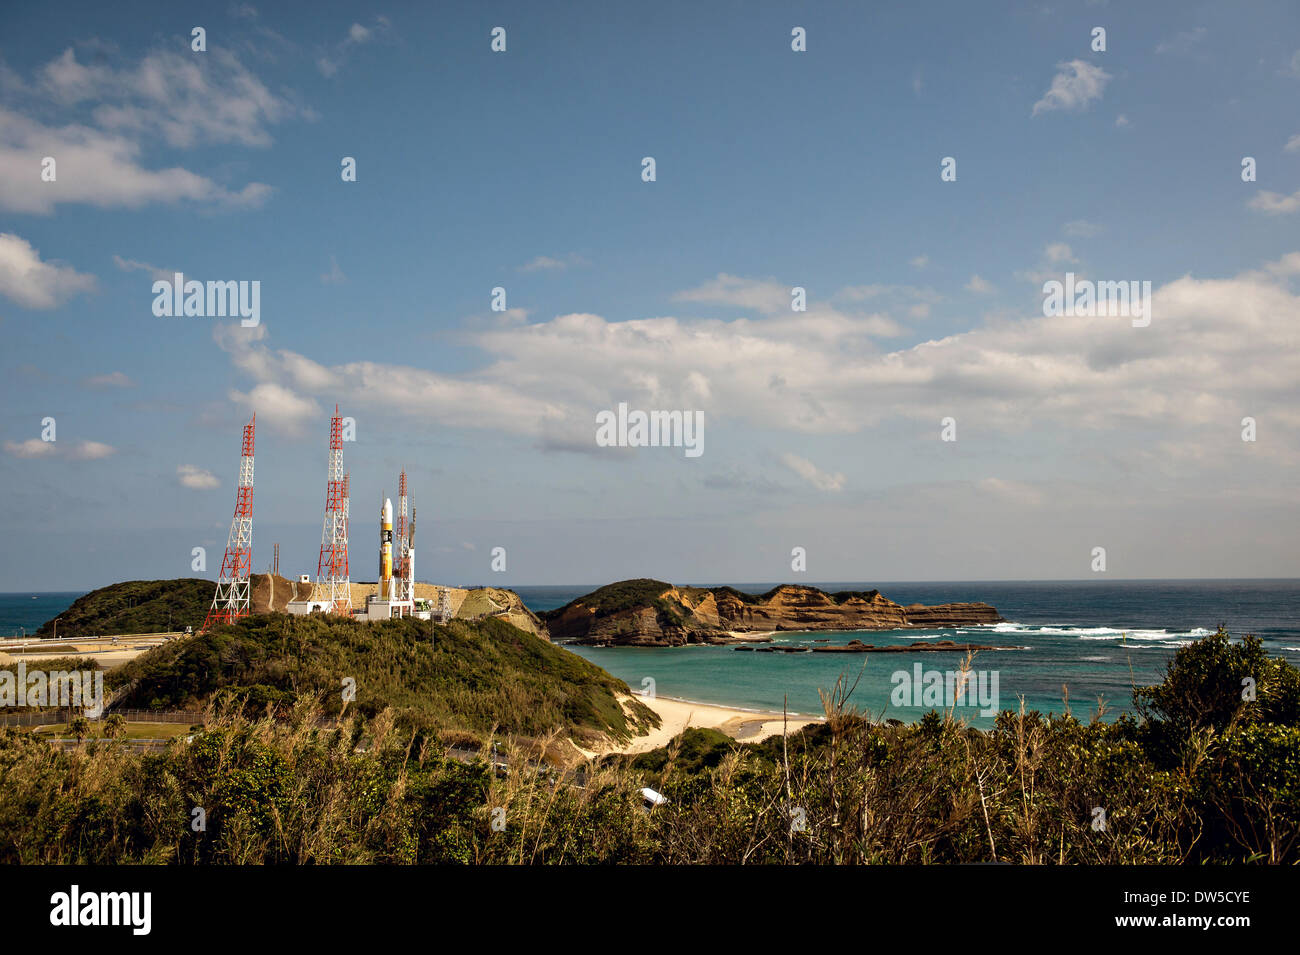 A Japanese Aerospace Exploration Agency H-IIA rocket carrying the NASA-JAXA Global Precipitation Measurement Core Observatory satellite rolls out to launch pad 1 at the Tanegashima Space Center February 27, 2014 in Tanegashima, Japan. - Stock Image